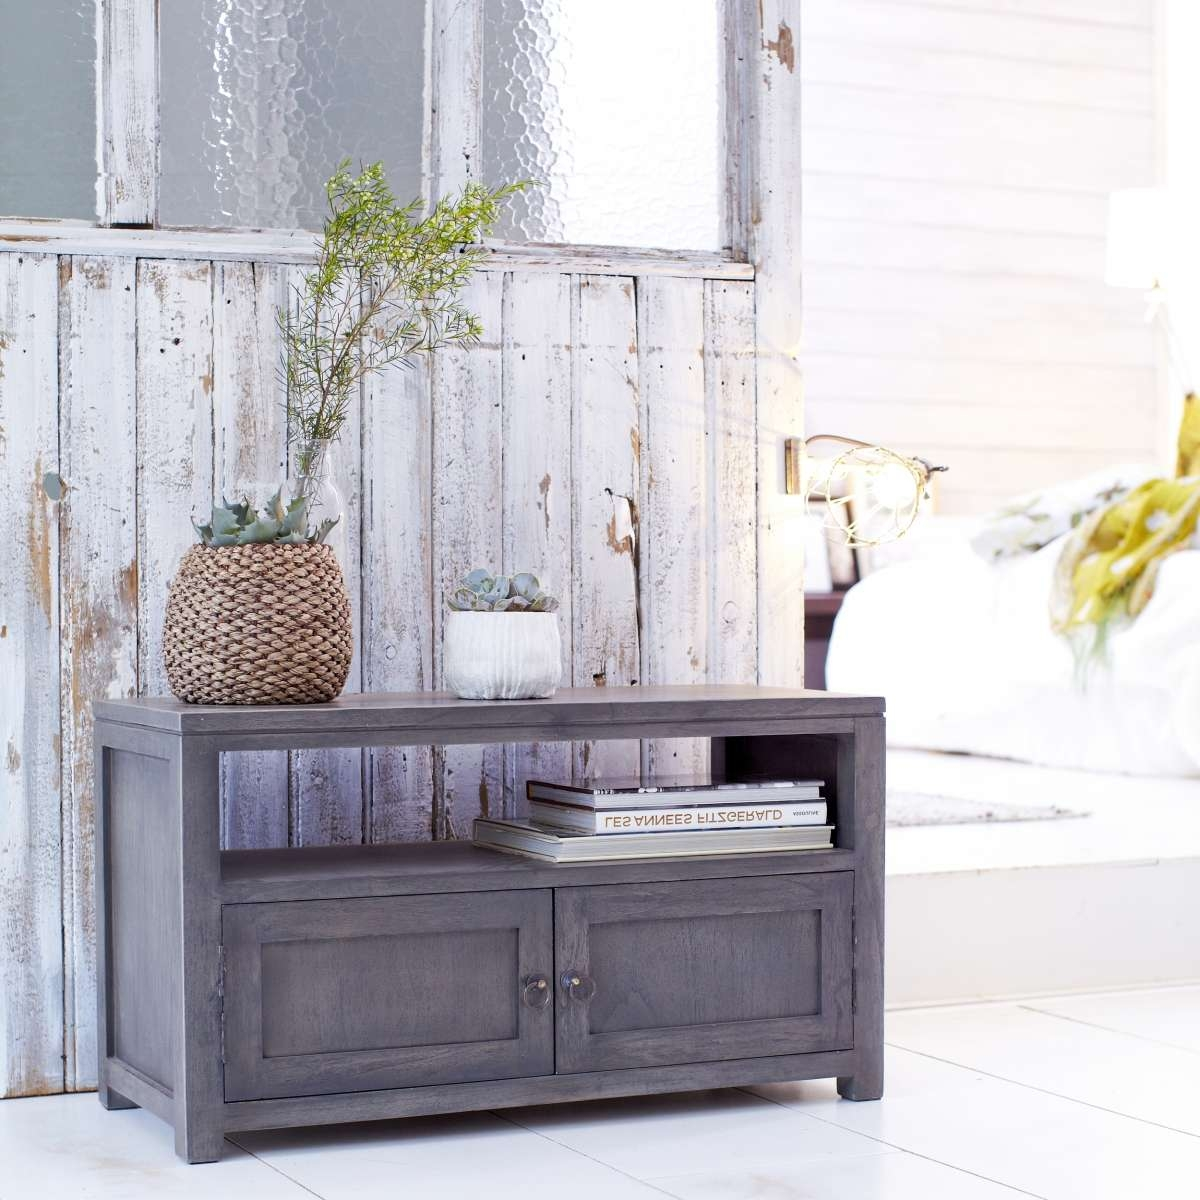 Tikamoon Solid Painted Grey Small Wood Mindi Tv Stand Tv Cabinet Inside Grey Wood Tv Stands (View 10 of 15)